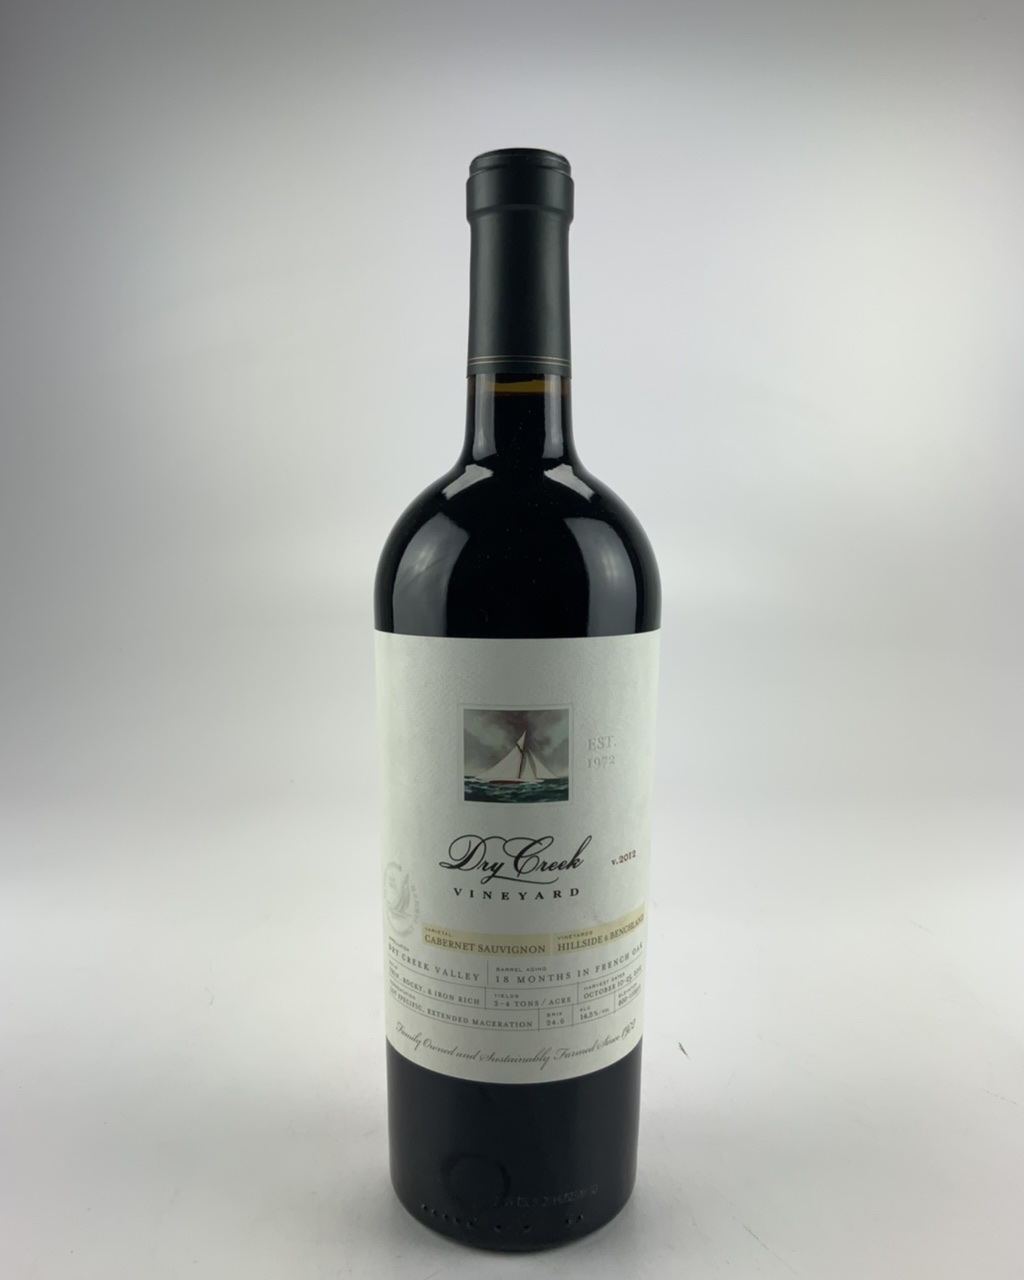 2012 Dry Creek Cabernet Sauvignon (Hillside Vineyards Benchland)